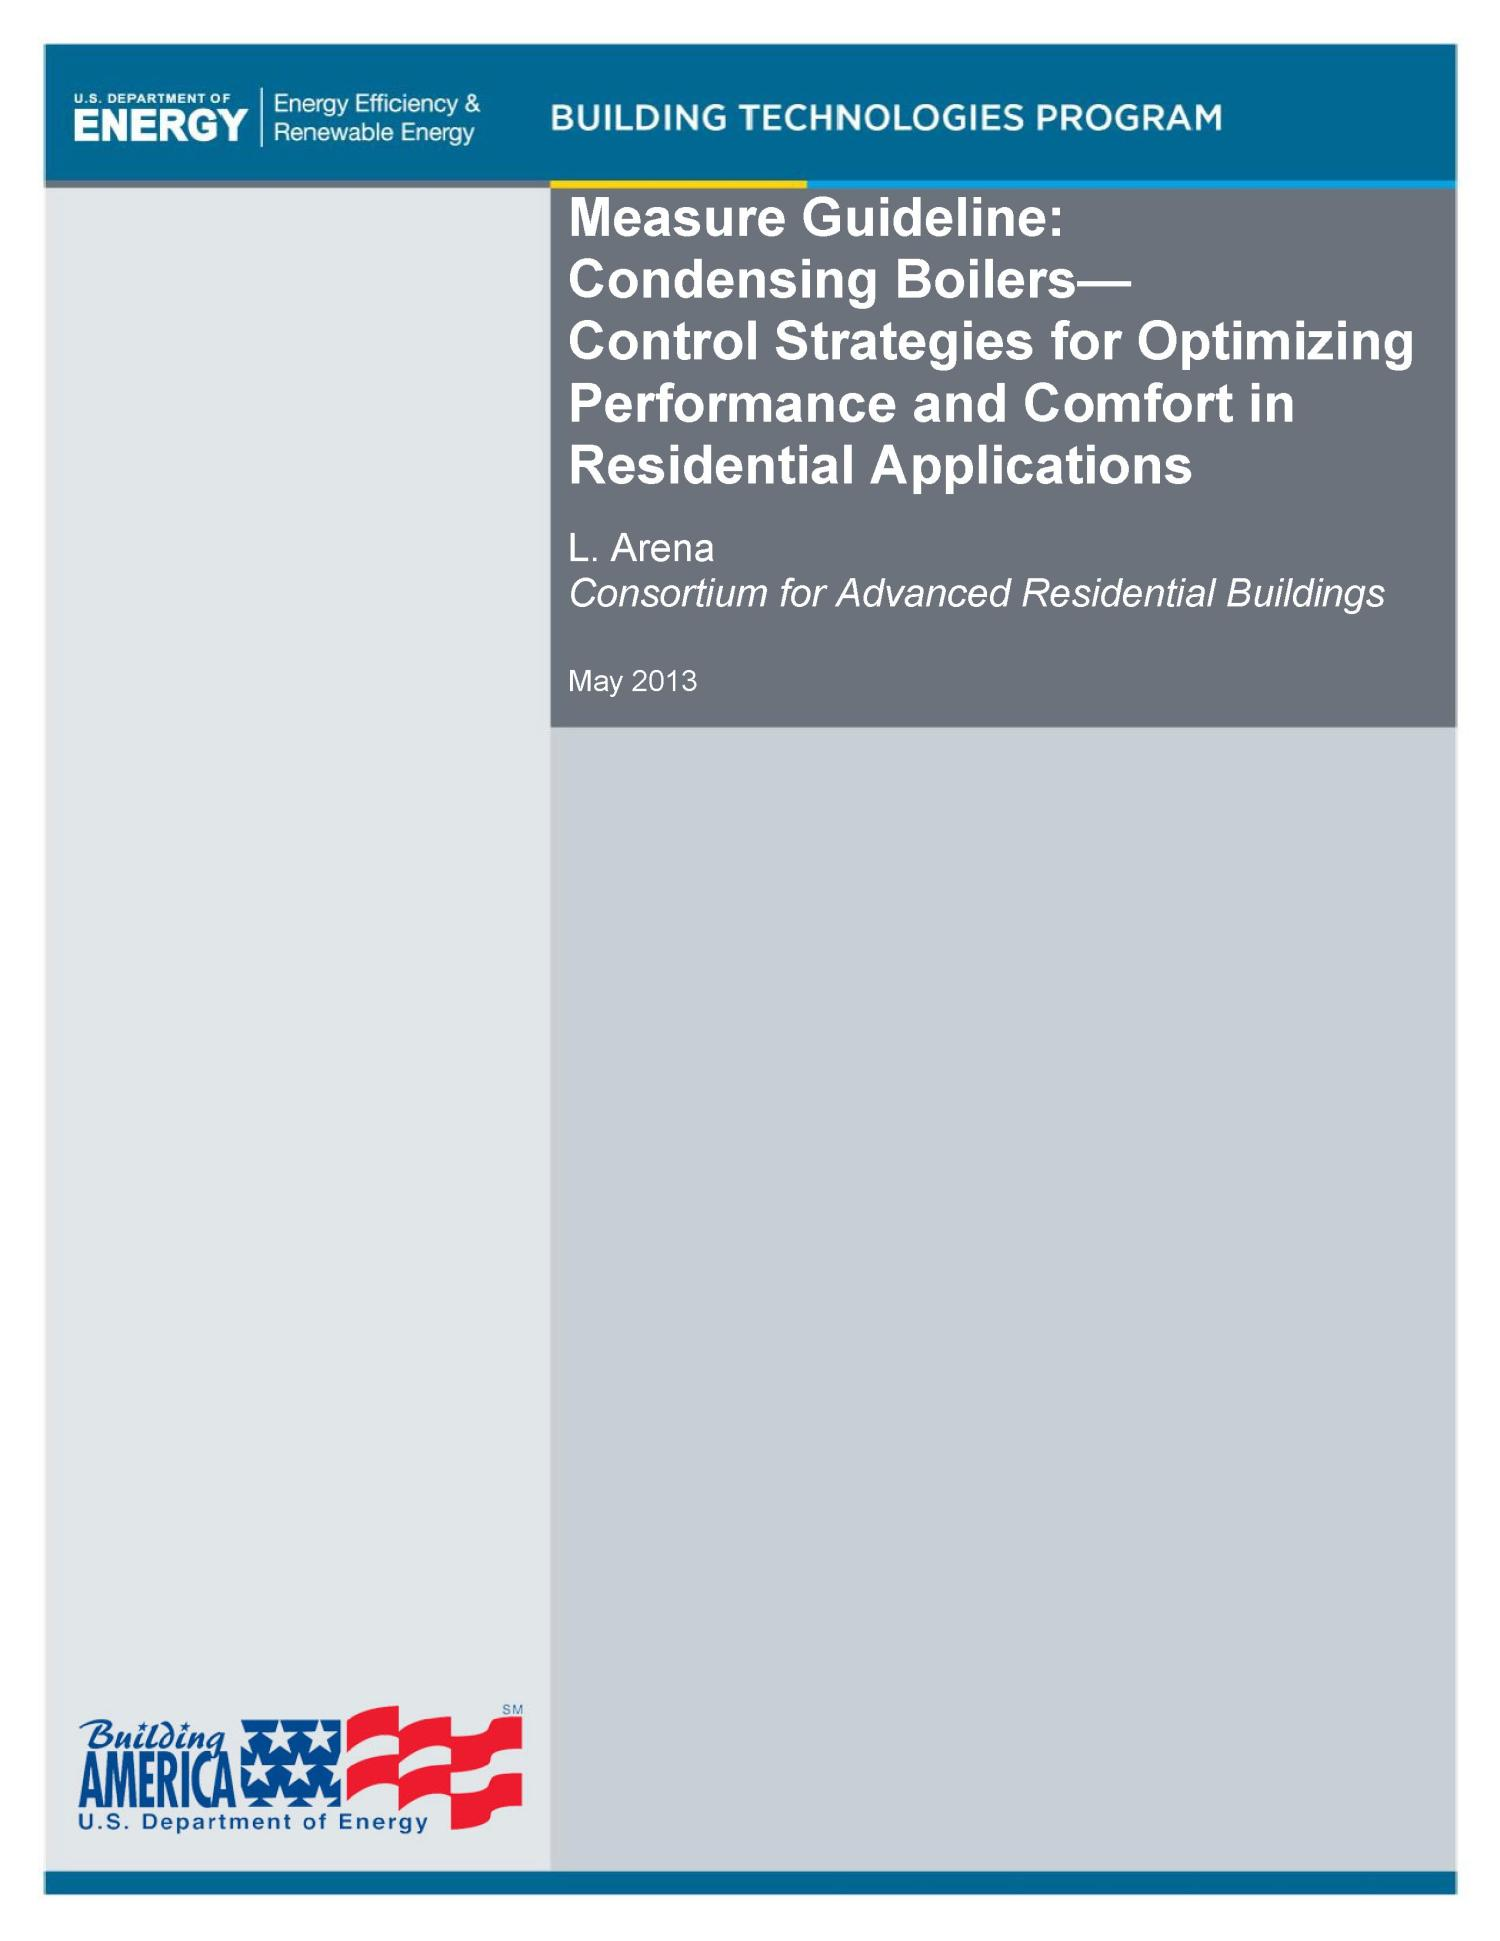 Measure Guideline: Condensing Boilers - Control Strategies for ...